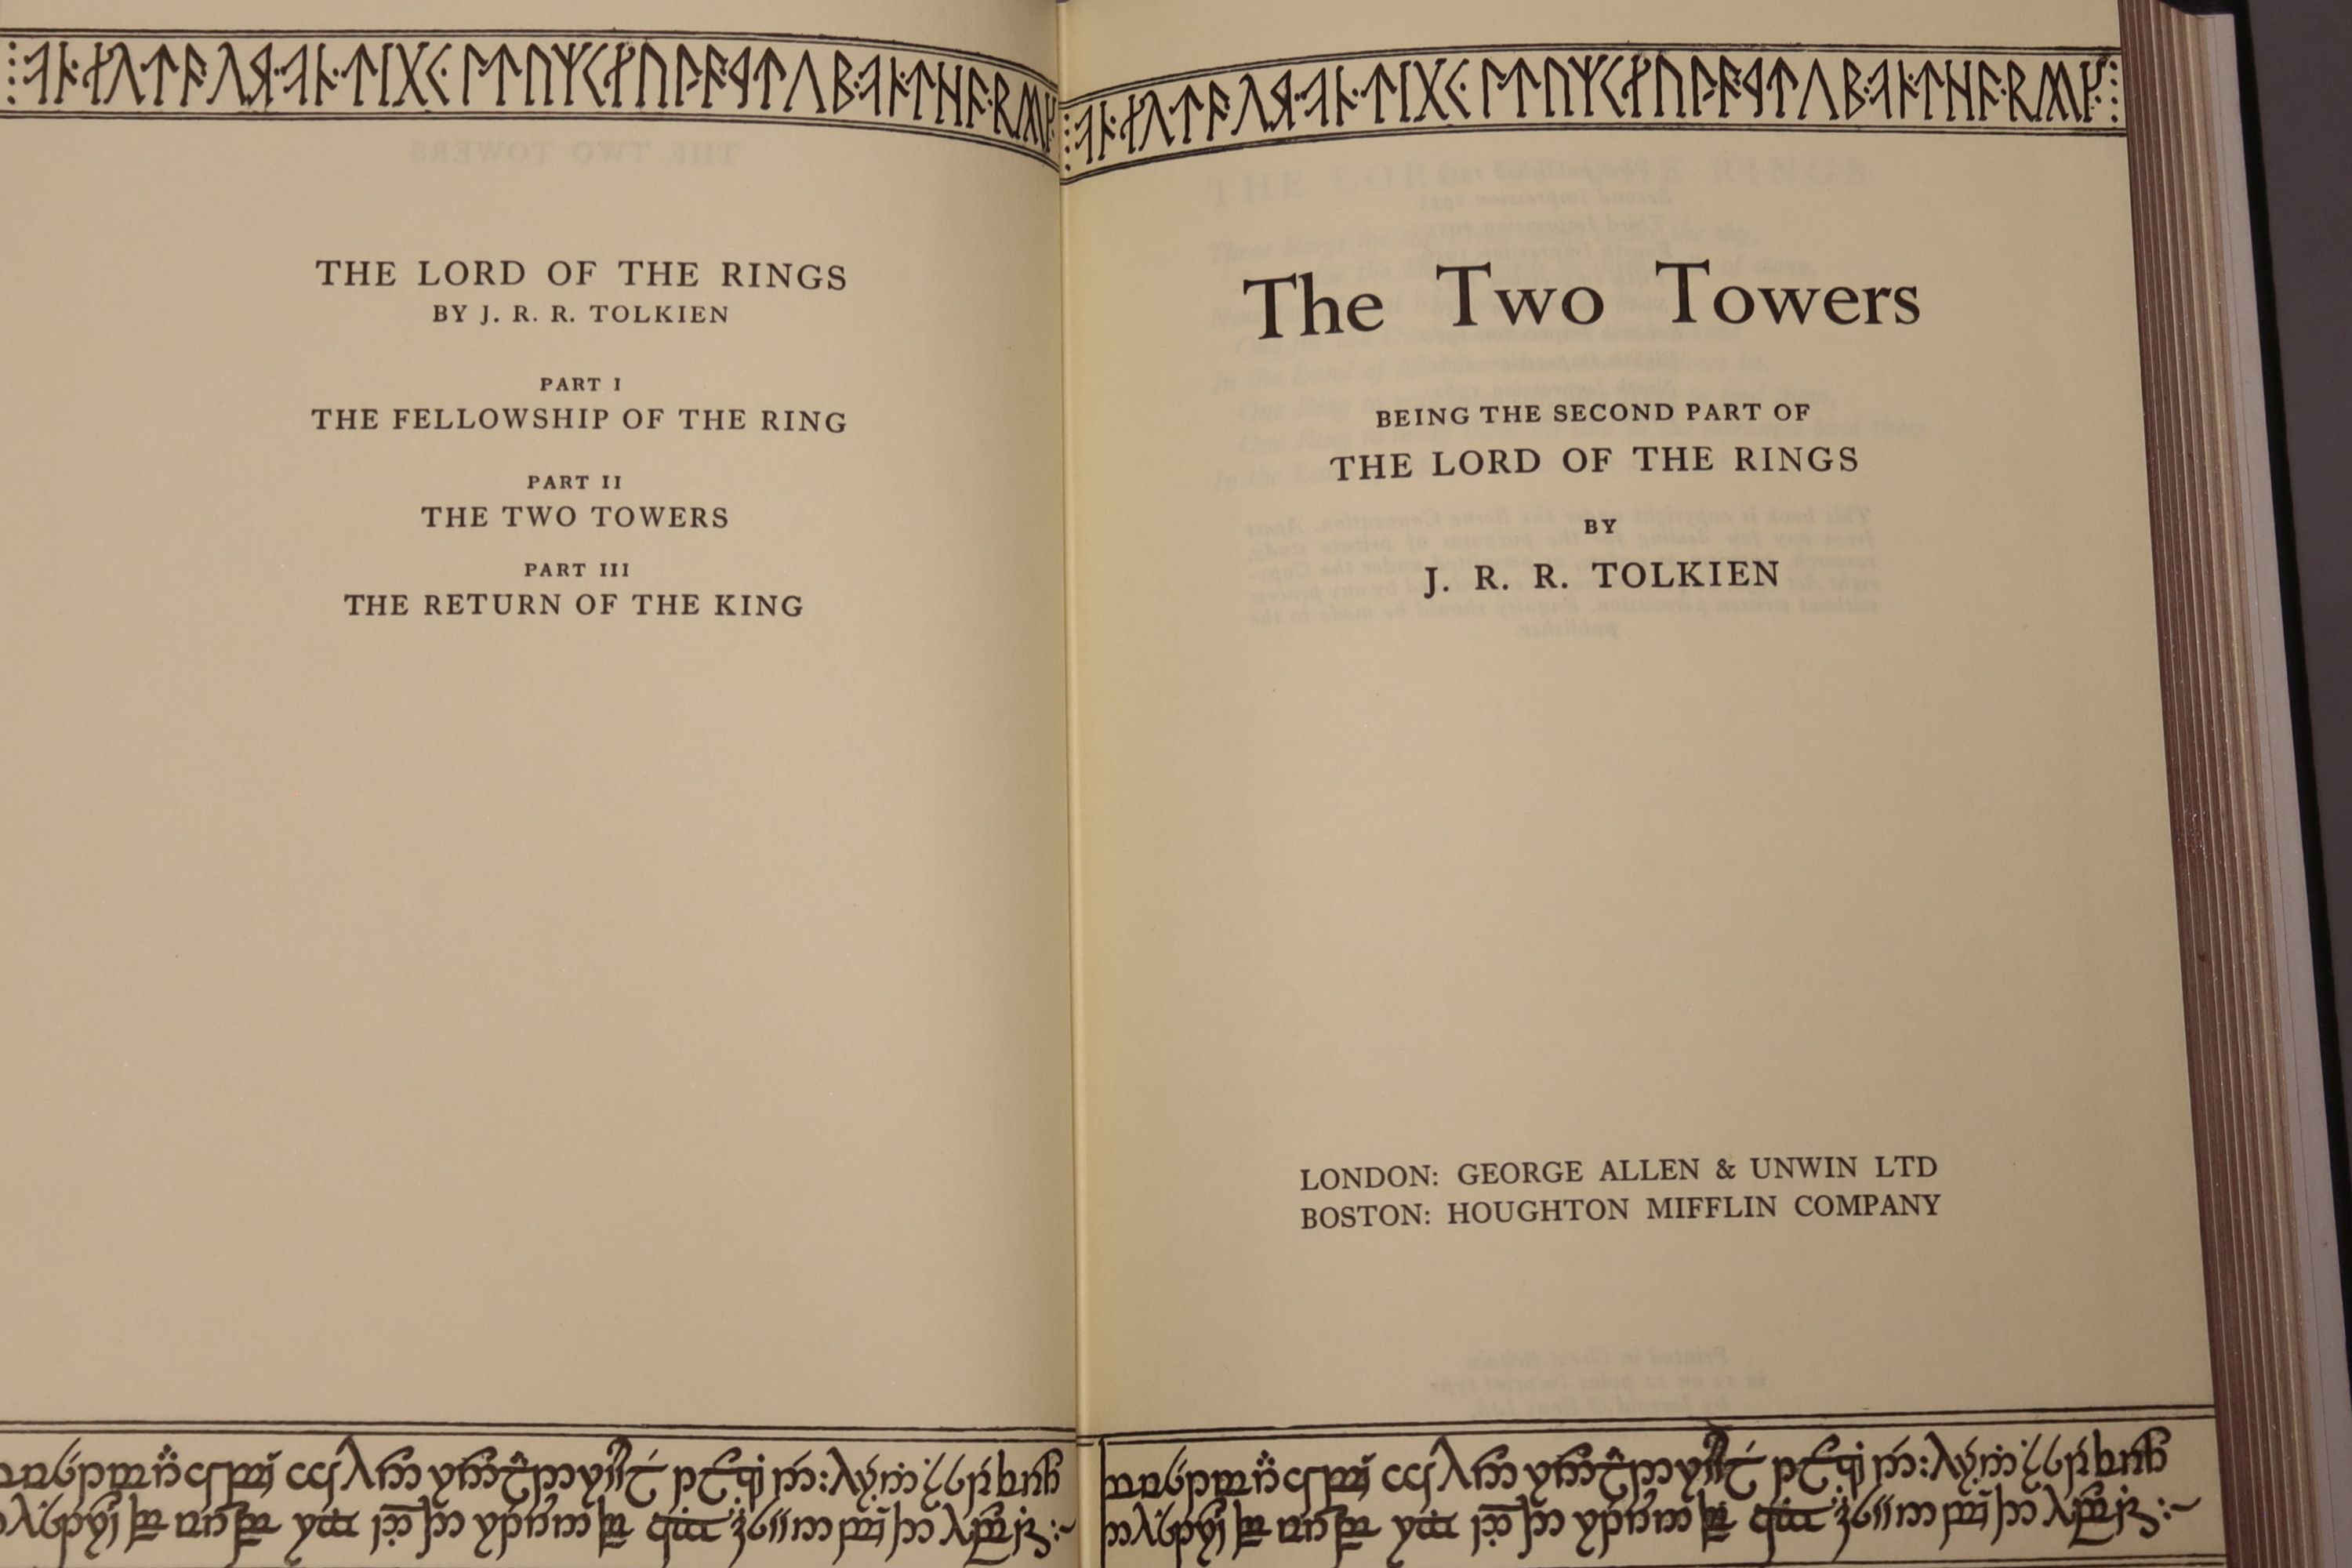 Tolkein, J.R.R. - The Fellowship of the Ring, The Two Towers, The Return of the King 1963, tenth and - Image 6 of 11